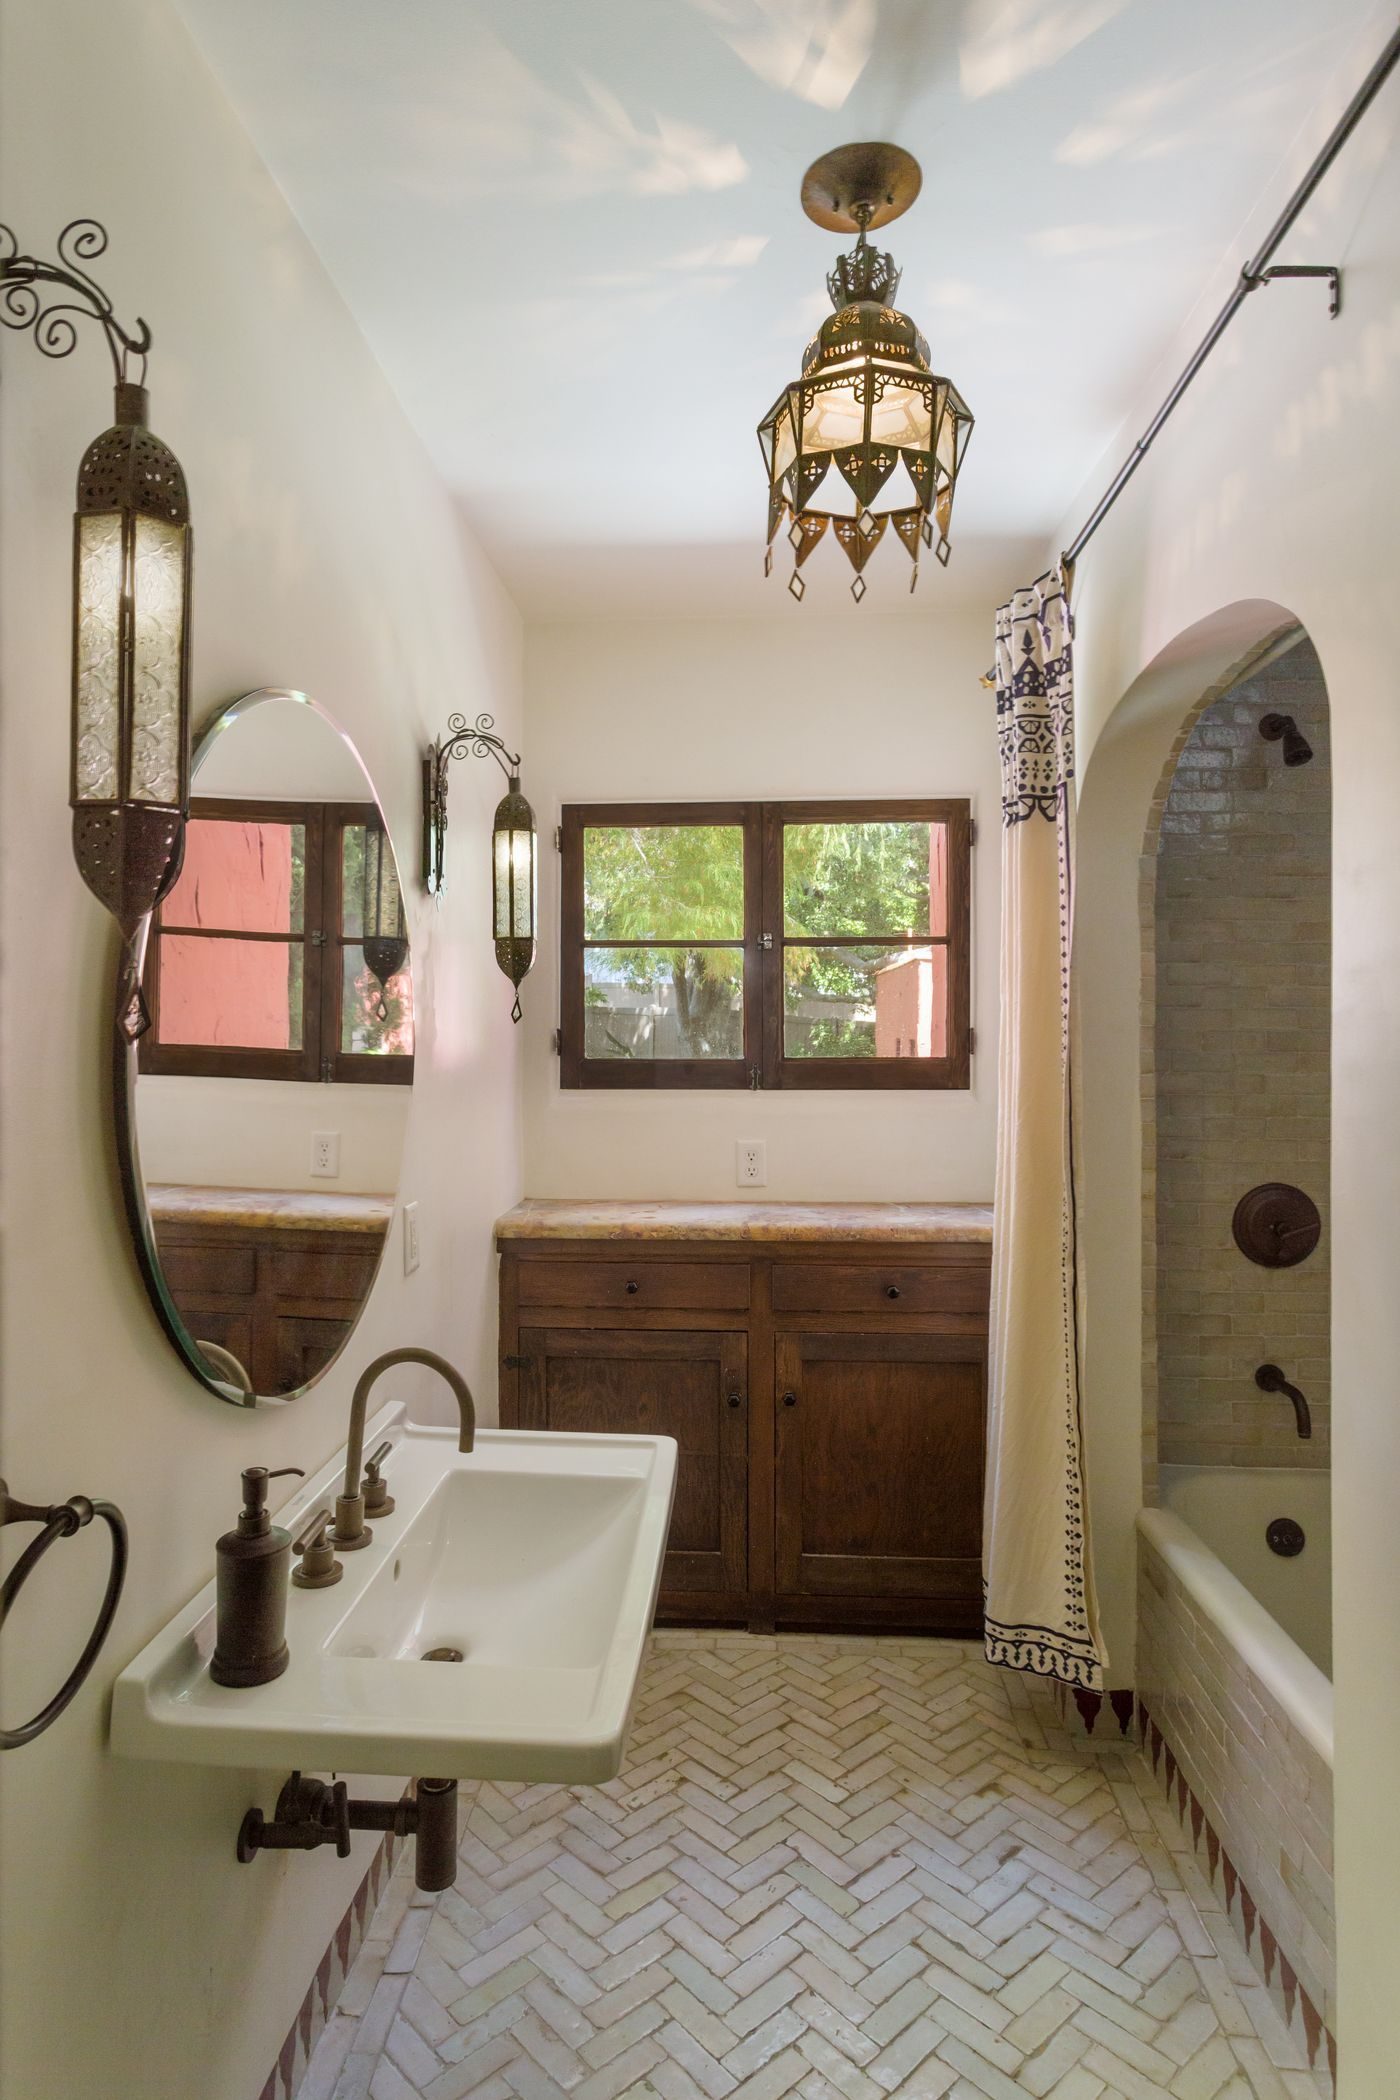 Photo of Spanish-style house oozes charm and color for $875K in Glendale